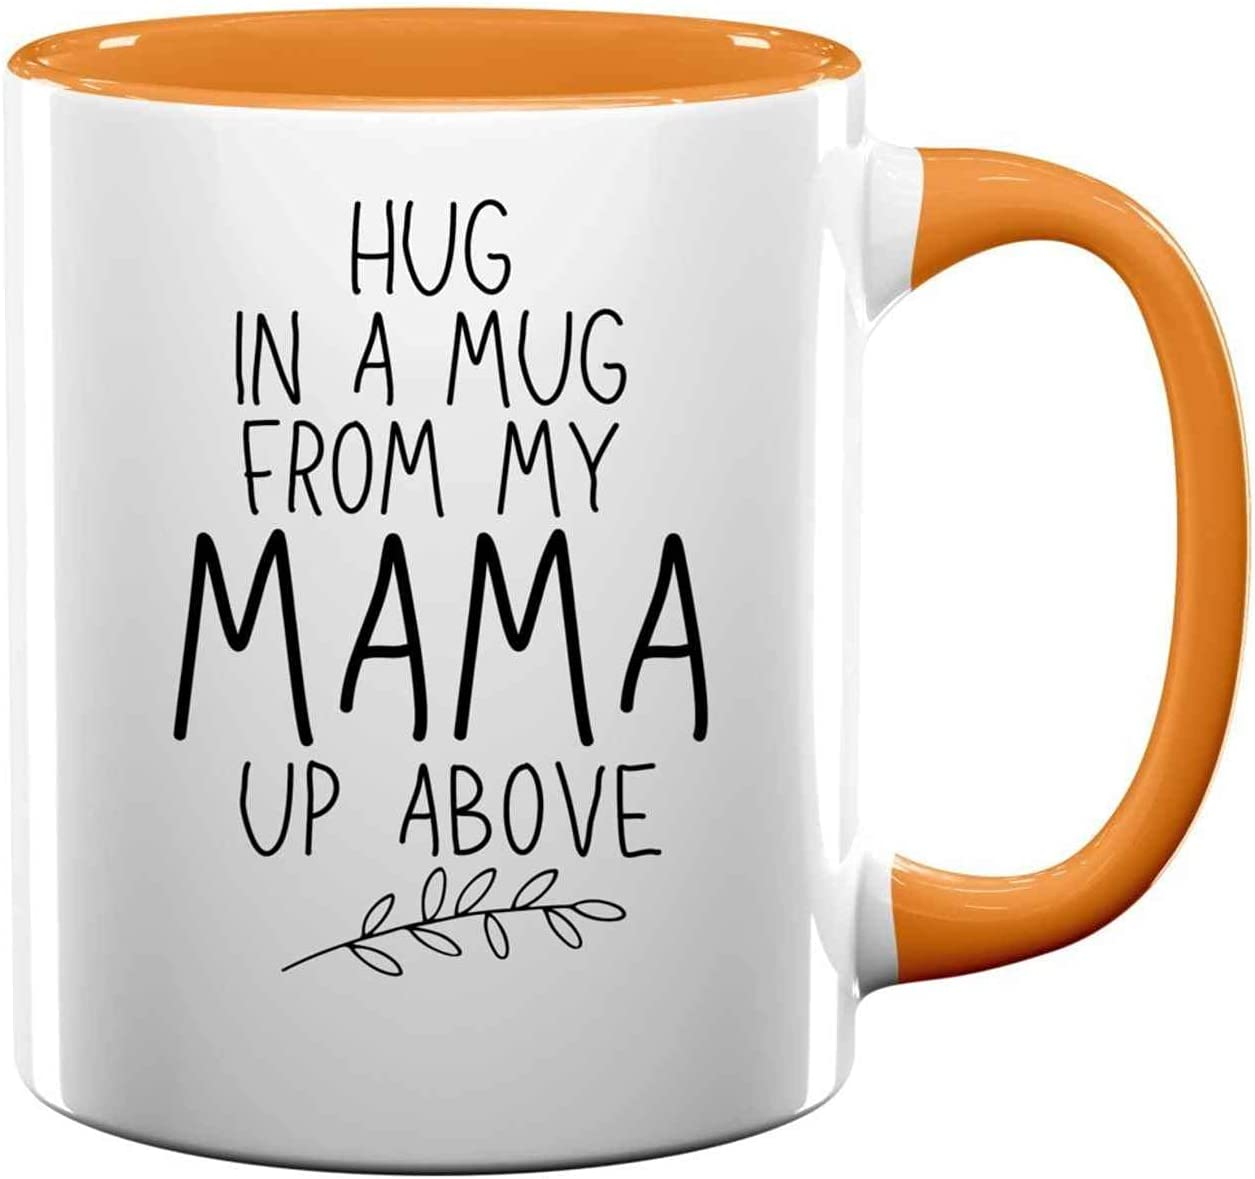 Mama Memorial For Loss Of Mother Coffee Mom A Is 25% OFF Al sold out. Hug Hea In